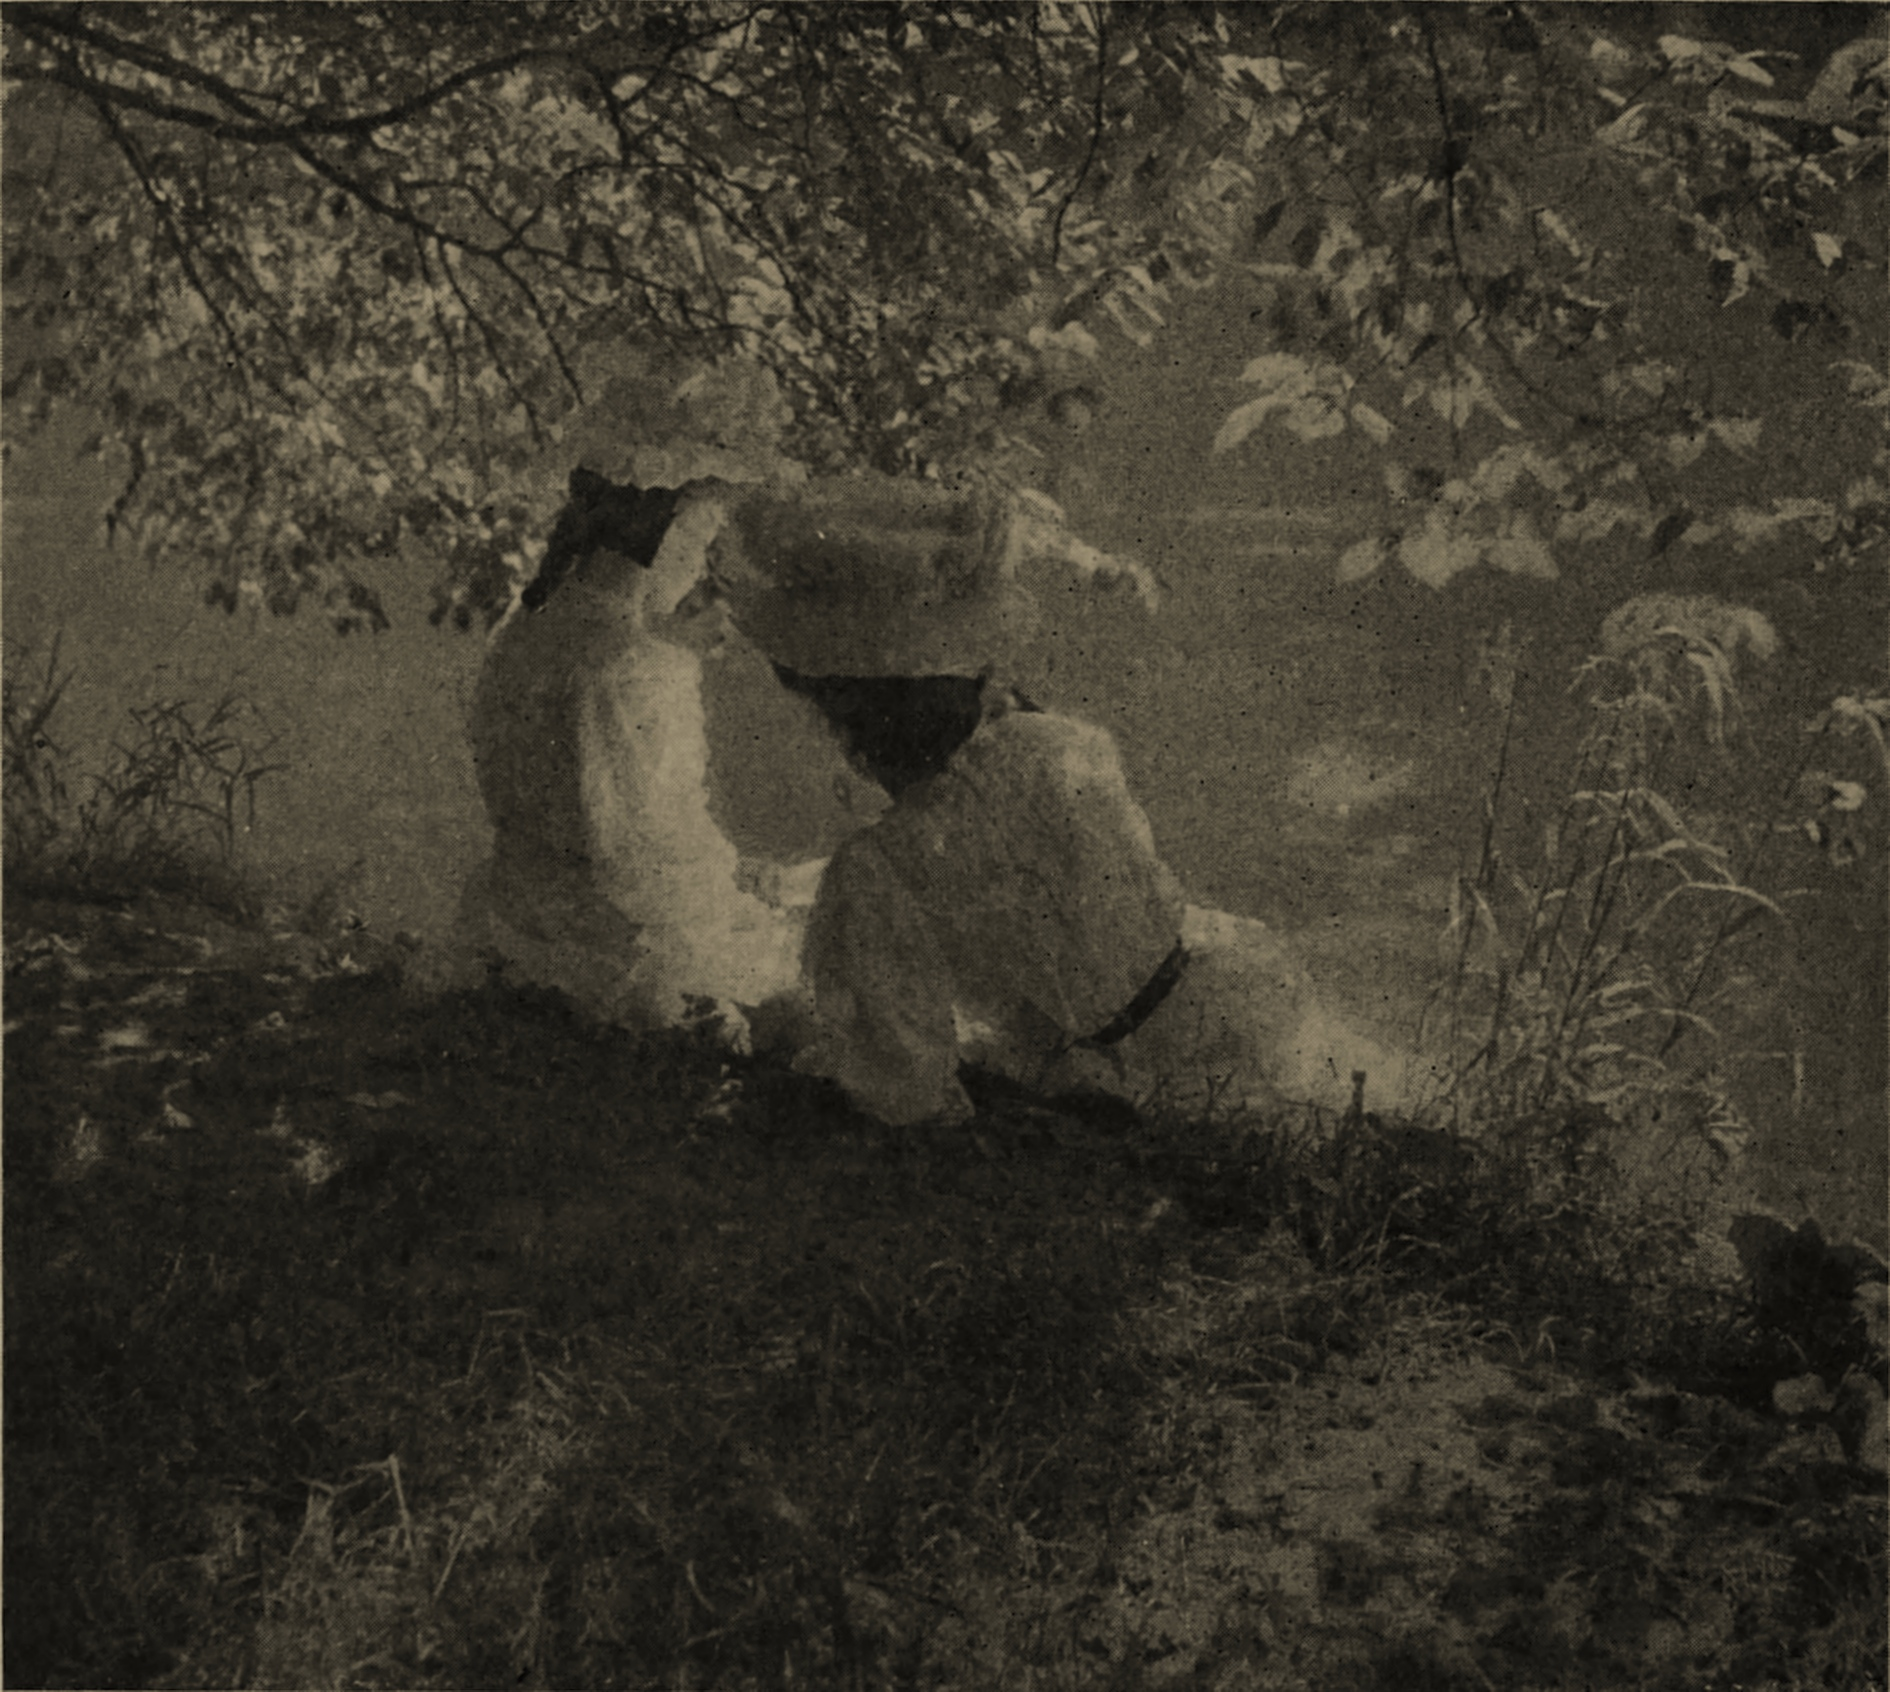 Leafy June by A. W. Walburn about 1908